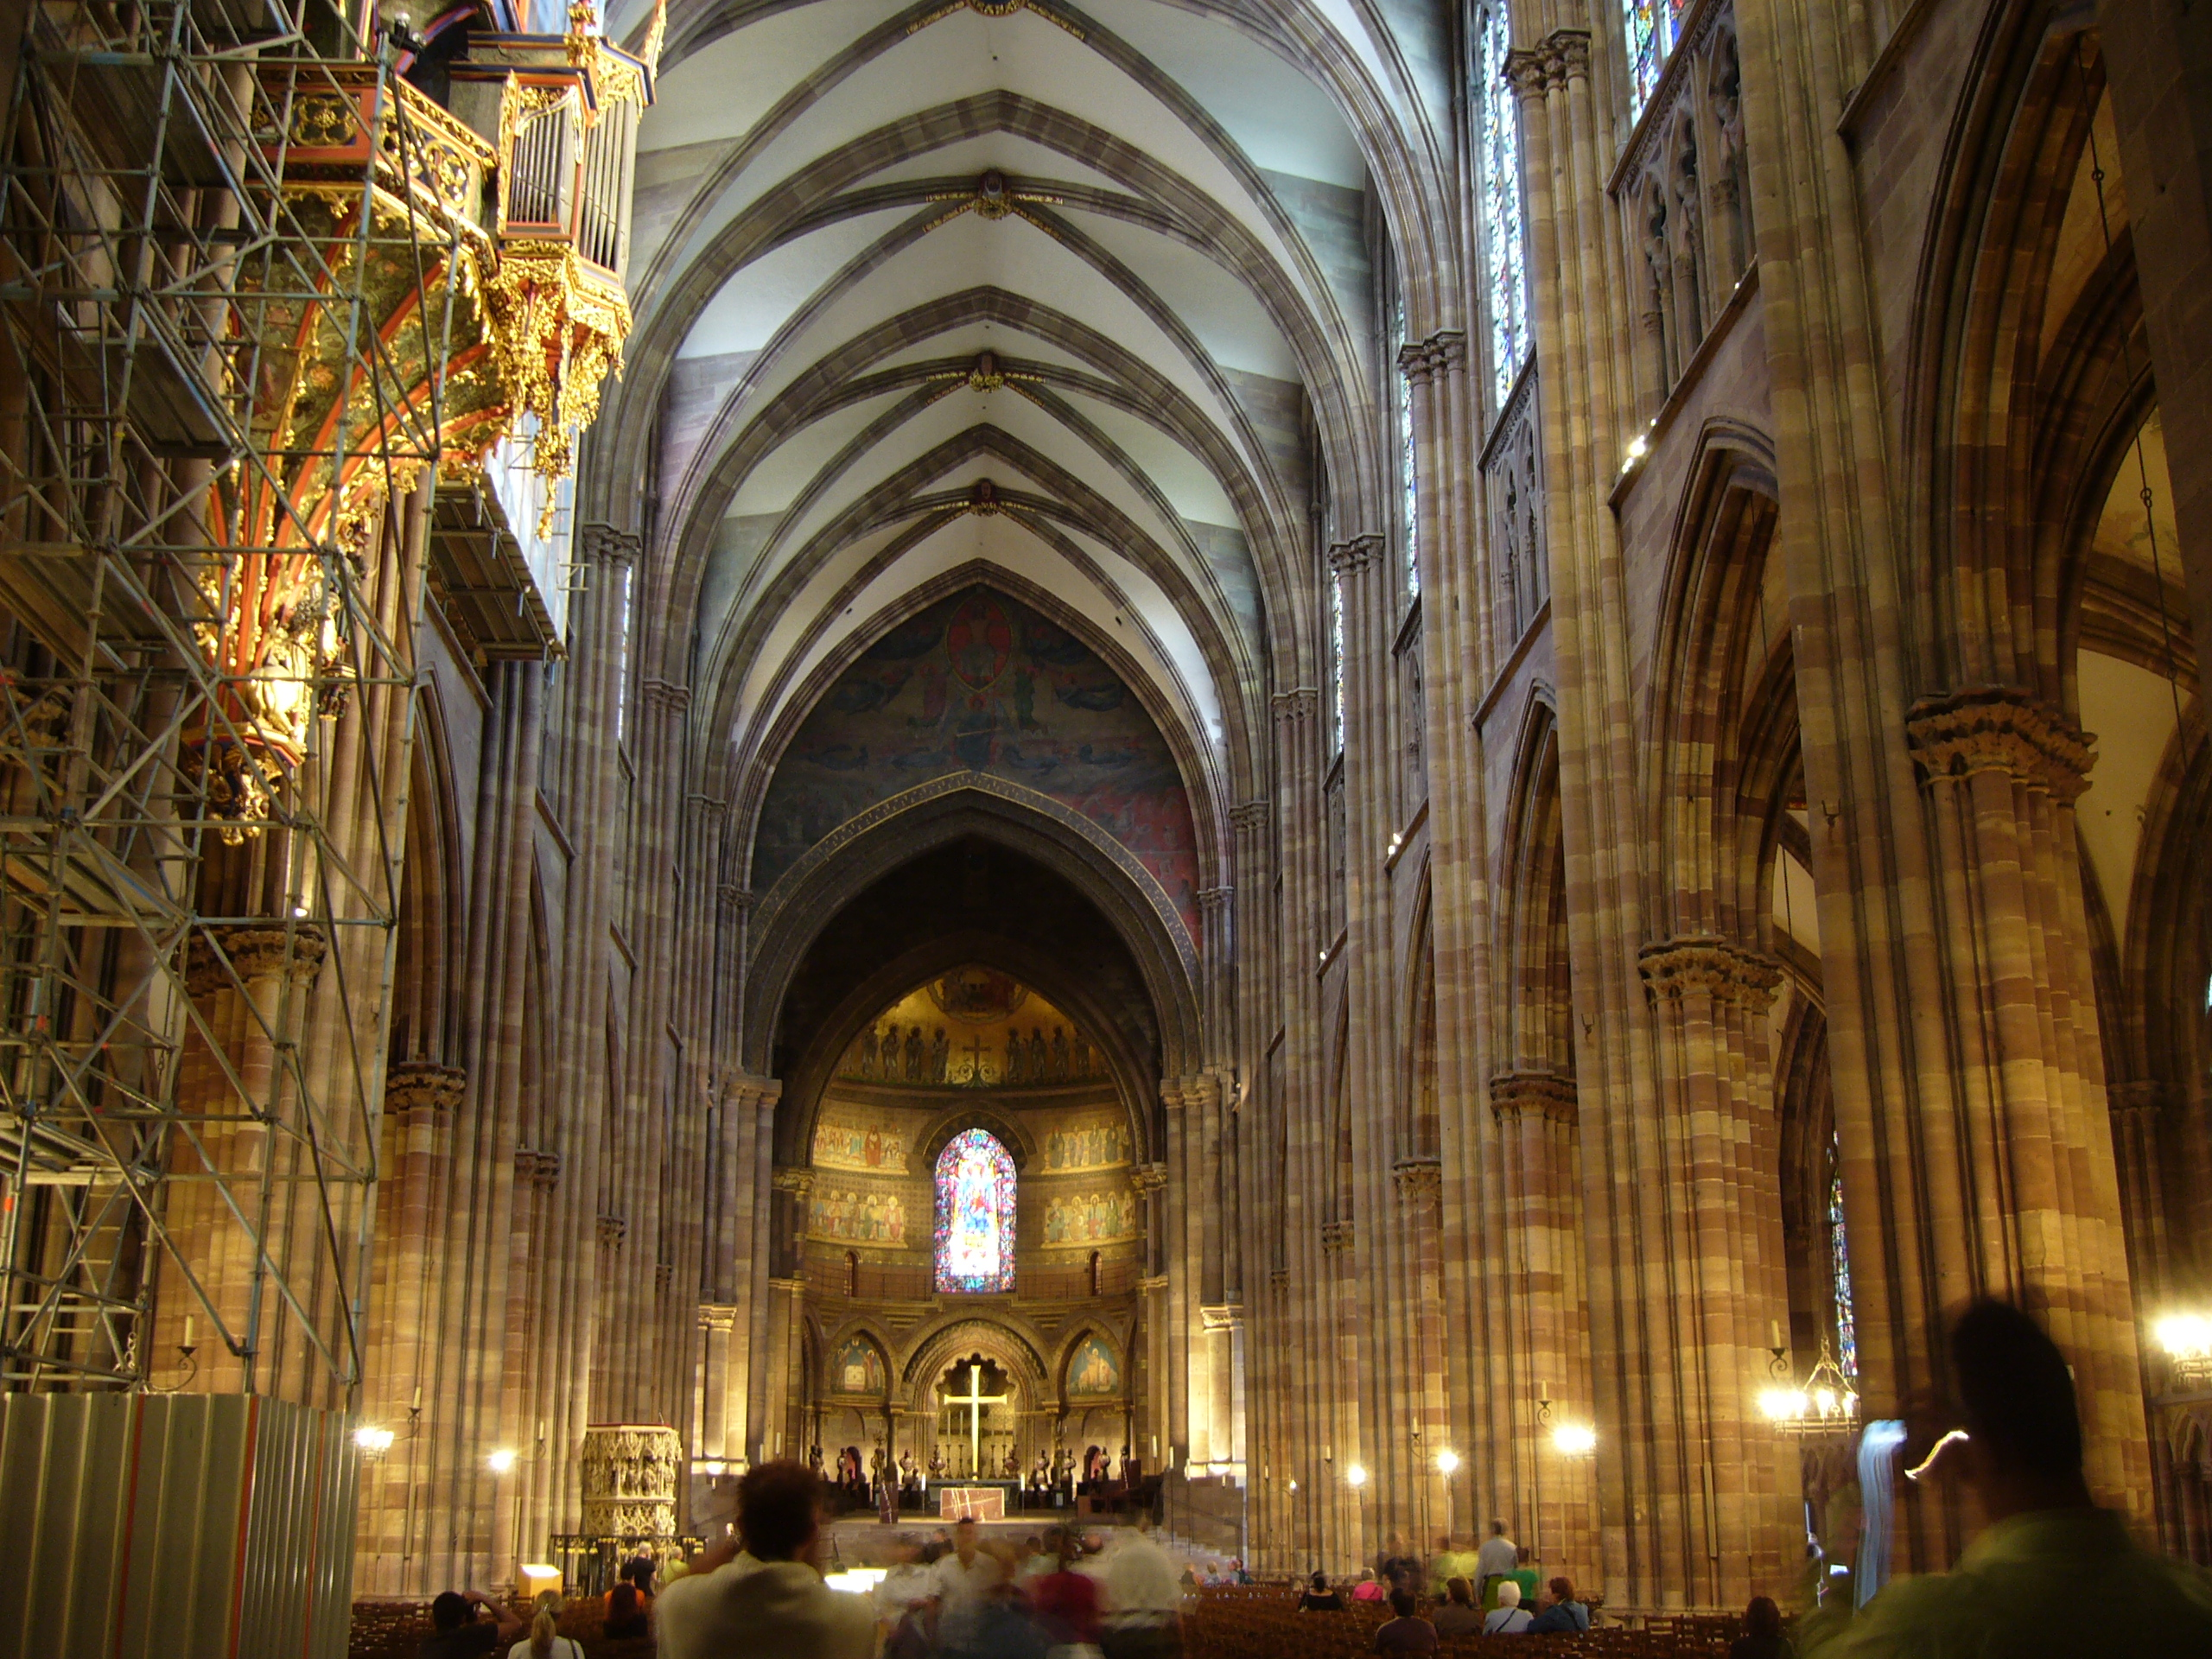 Interieur France Of File Absolute Cathedrale Strasbourg Interieur 01 Jpg